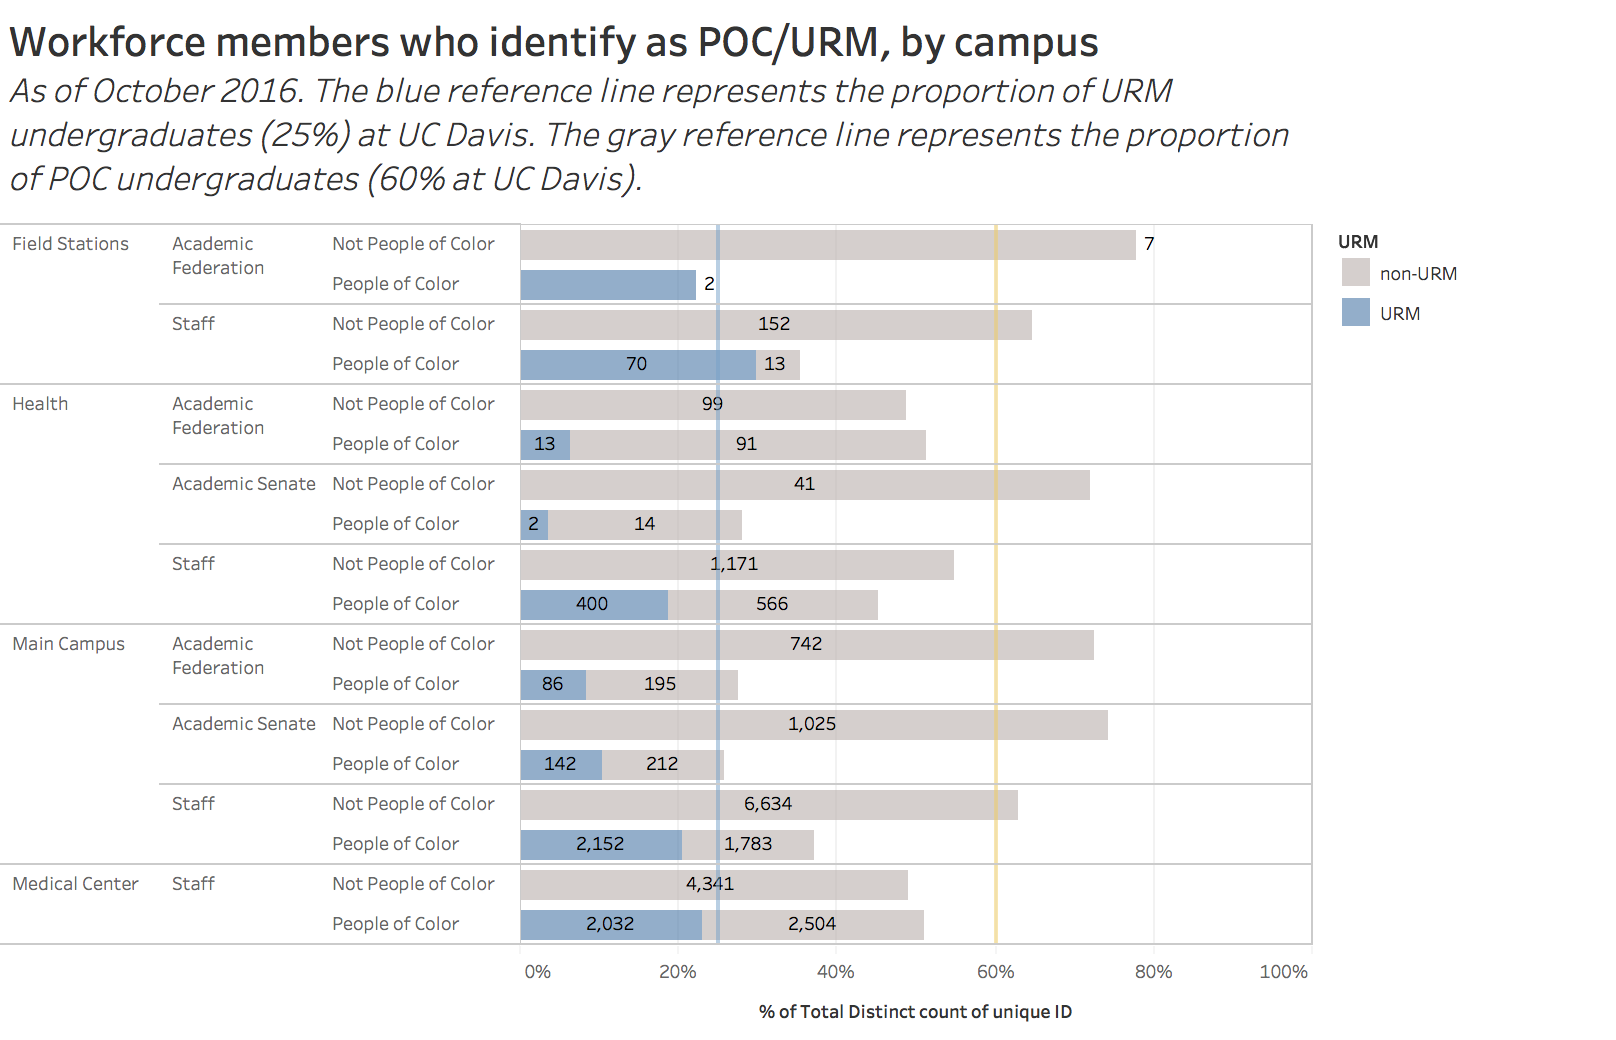 Workforce members who identify as POC/URM by campus